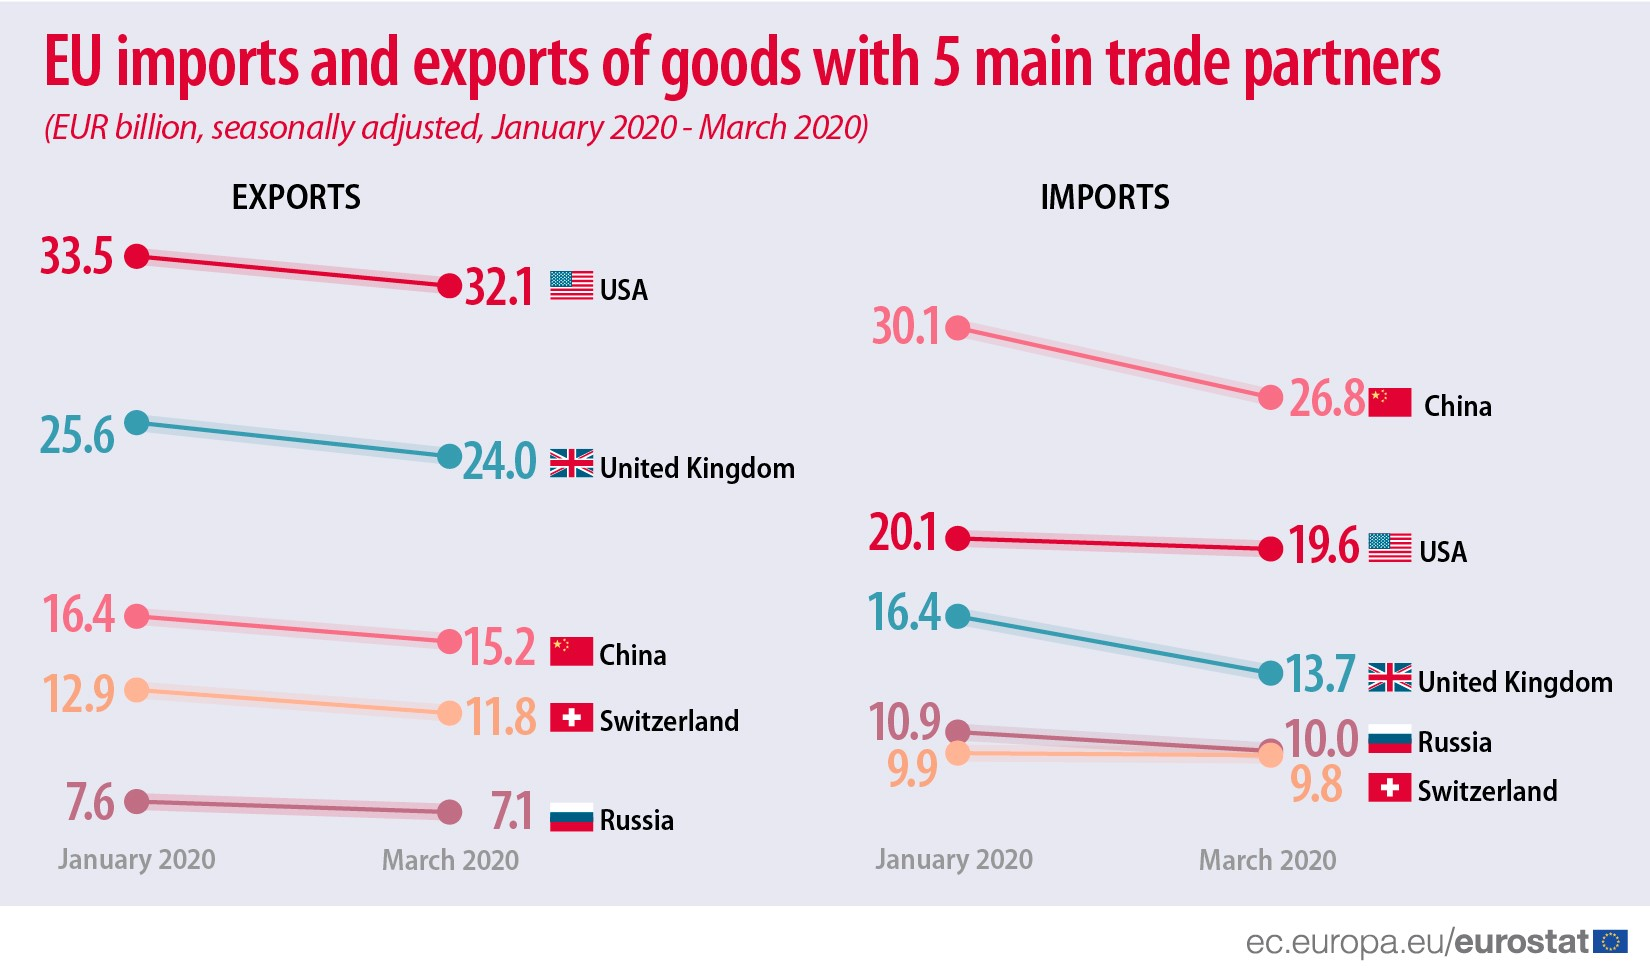 EU imports and exports of goods with 5 main trade partners, January - March 2020